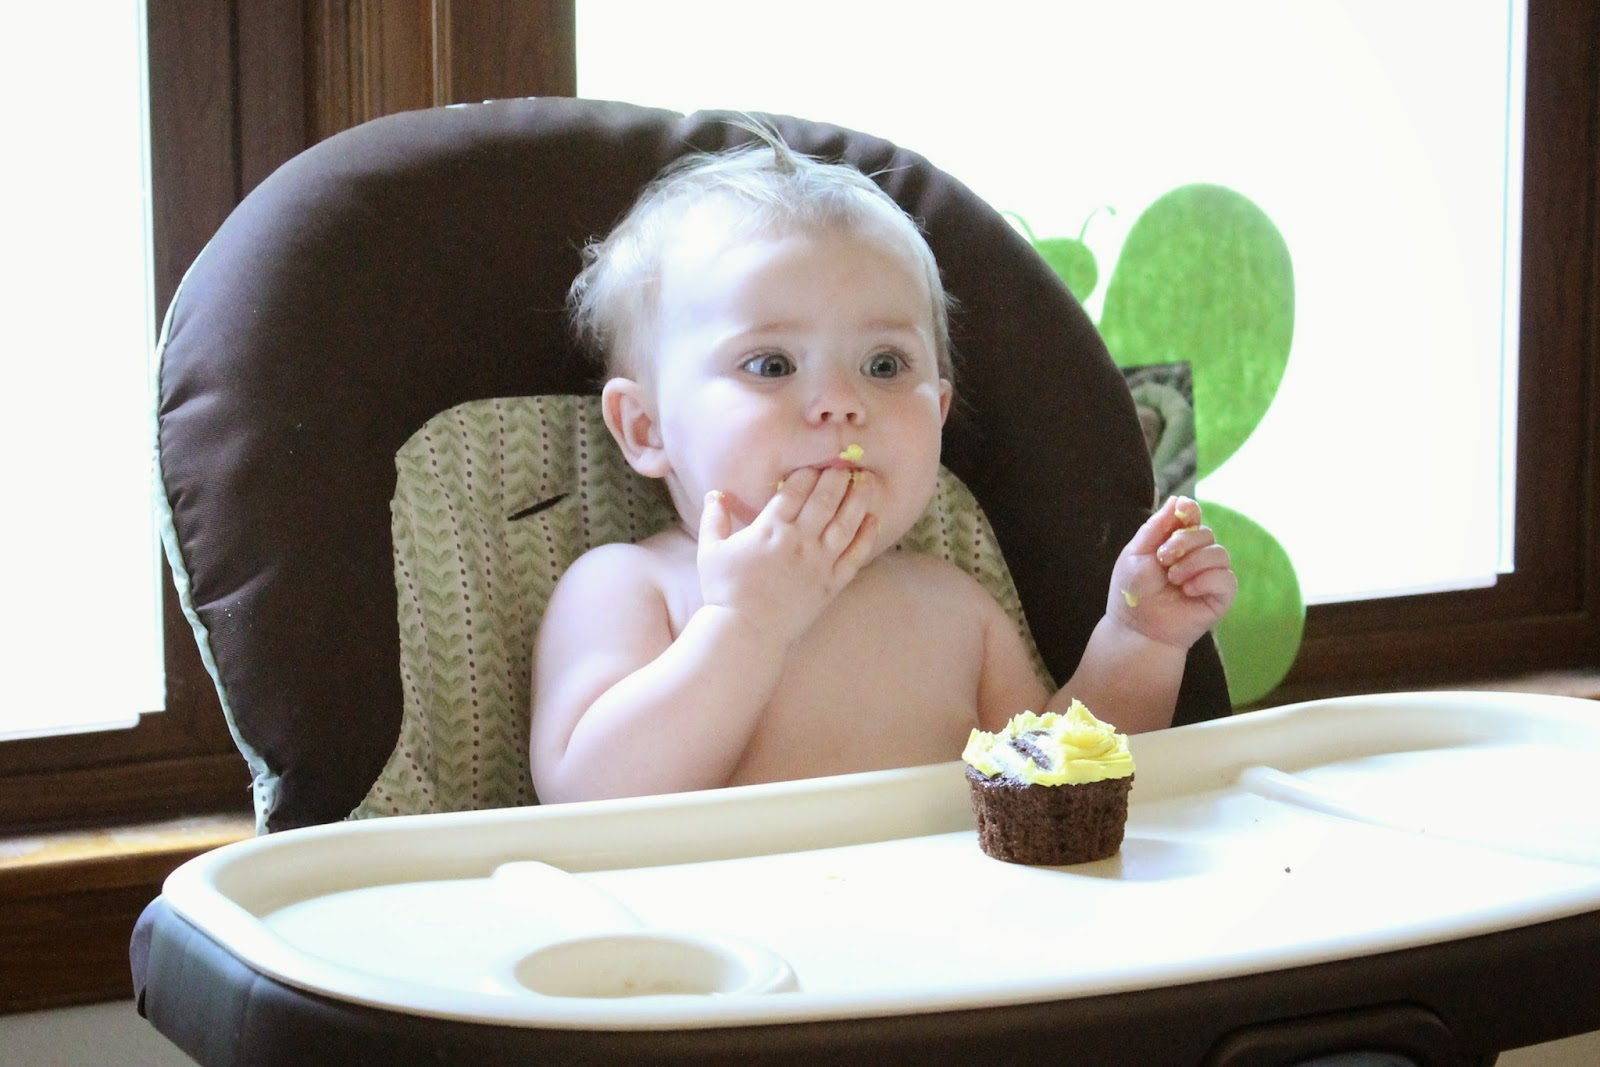 Baby pig eating cake - photo#9